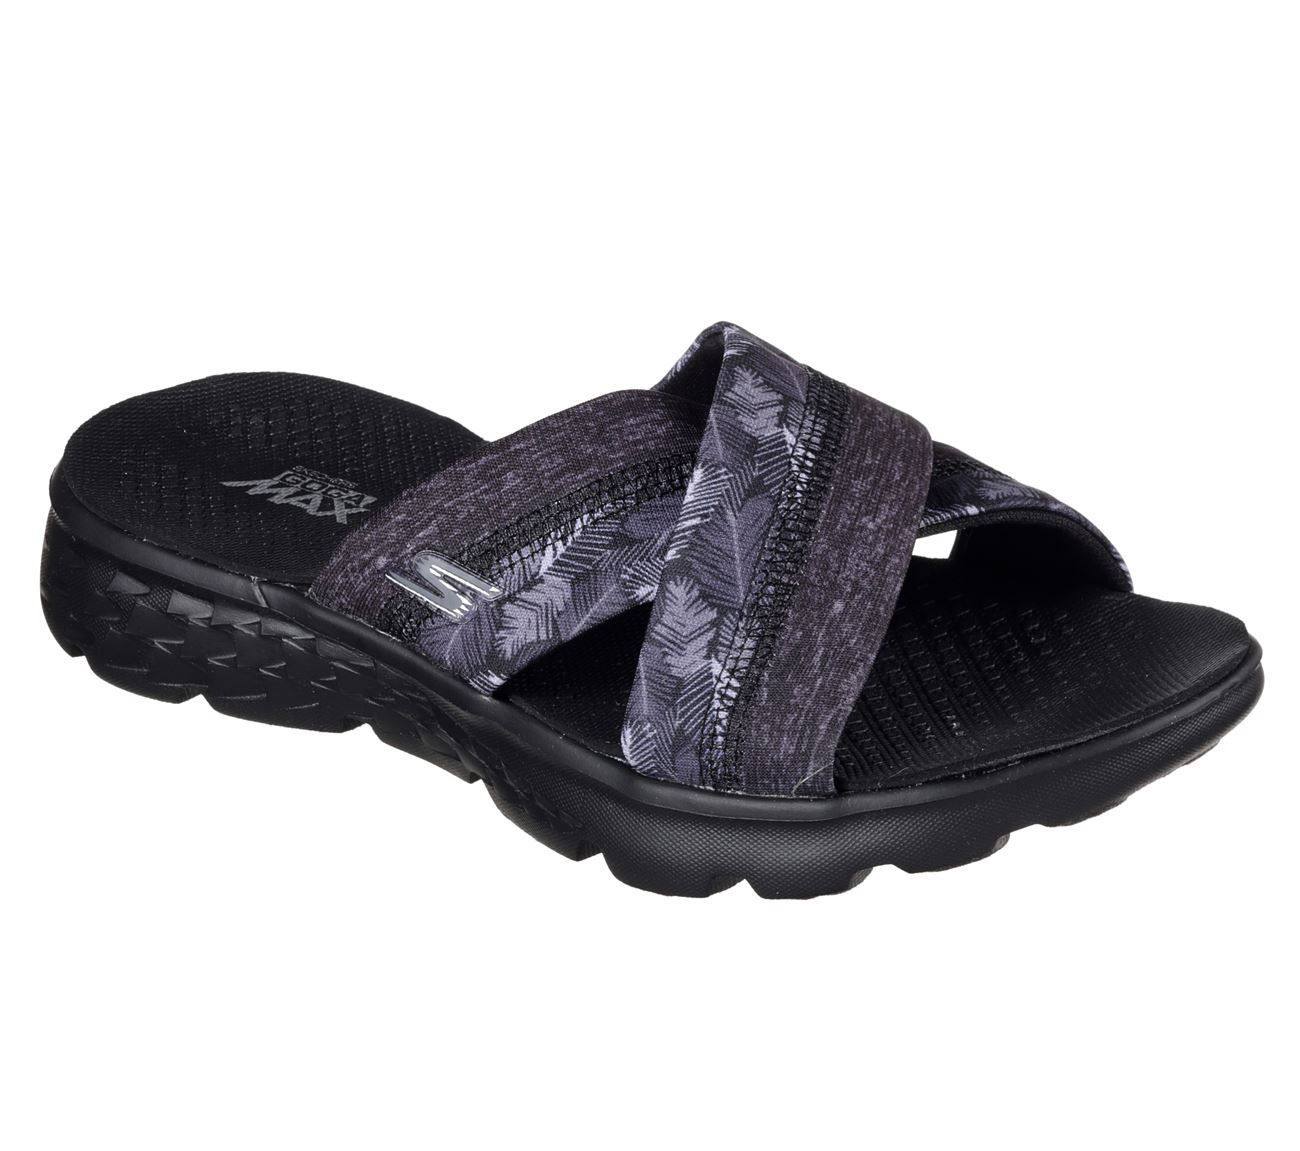 Skechers Performance Womens On The Go 400 Tropical Sandal -2248